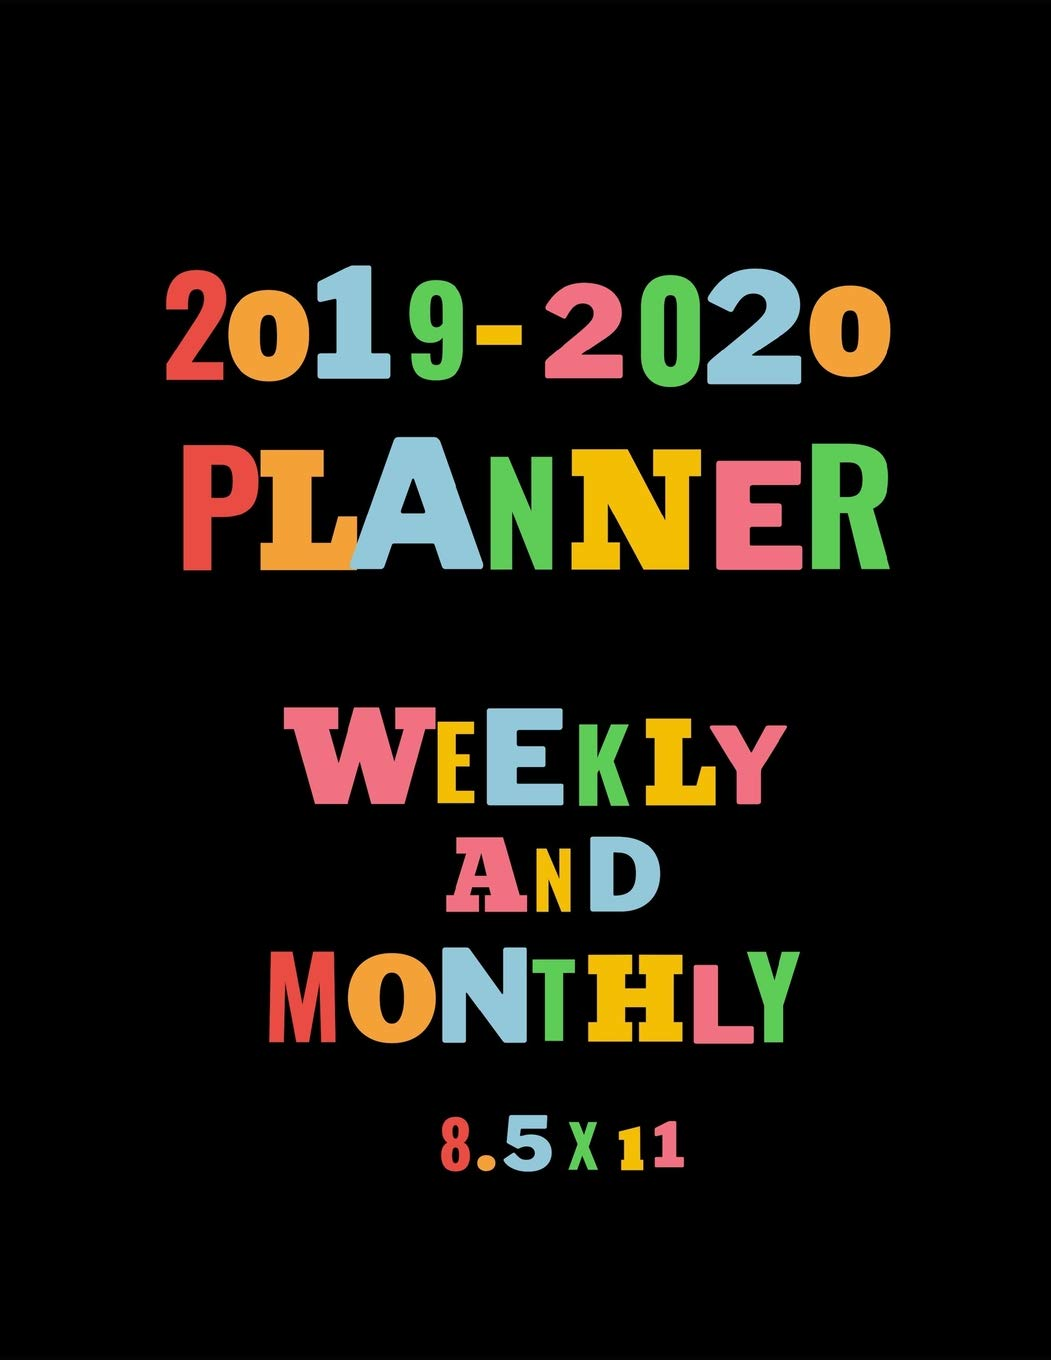 2020 Year In Review.2019 2020 Planner Weekly And Monthly 8 5 X 11 Word Theme